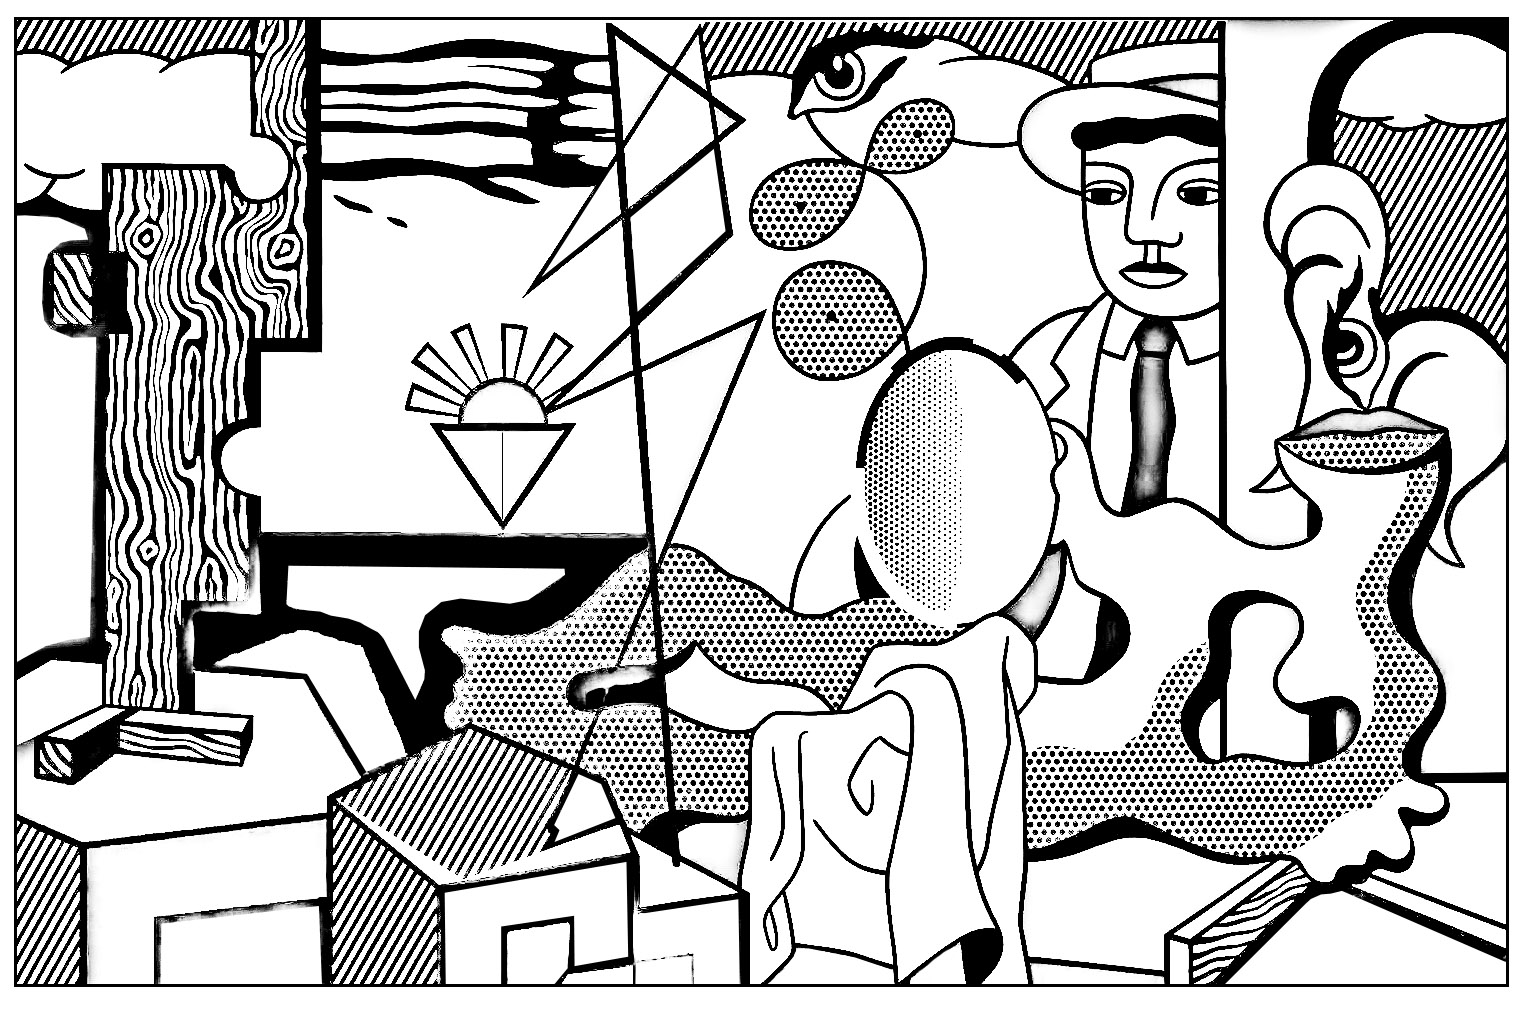 roy lichtenstein coloring pages 201507 06postersparacolorearroy lichtenstein ohhh coloring pages lichtenstein roy